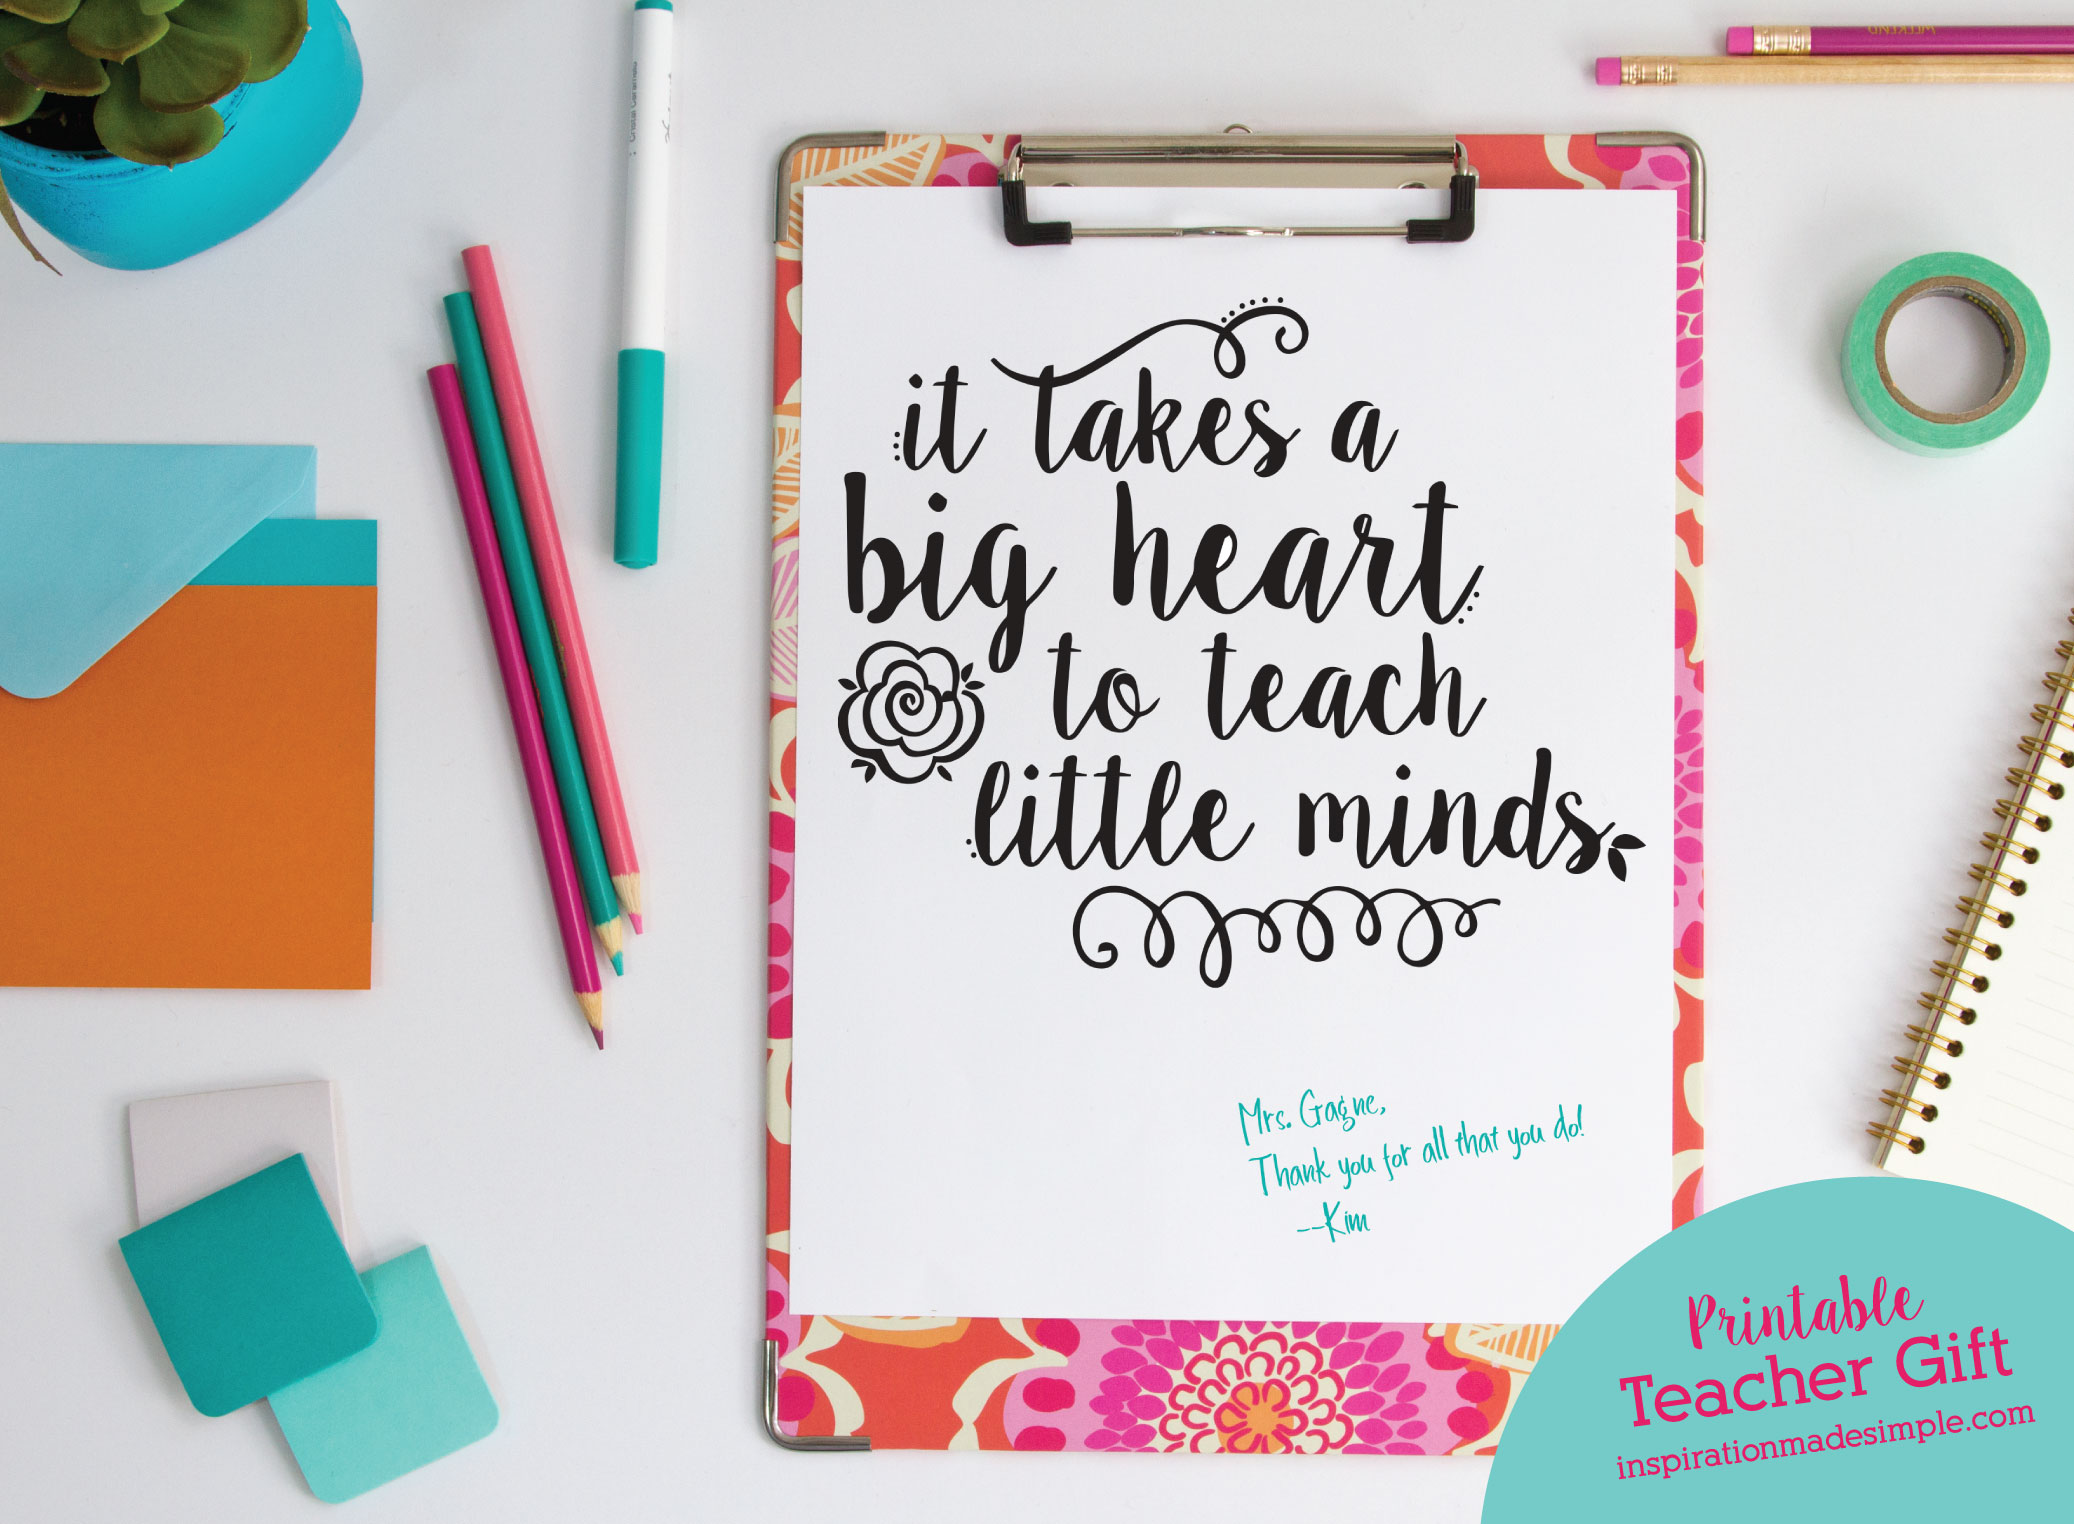 It takes a big heart to teach little minds Printable Quote for Teachers